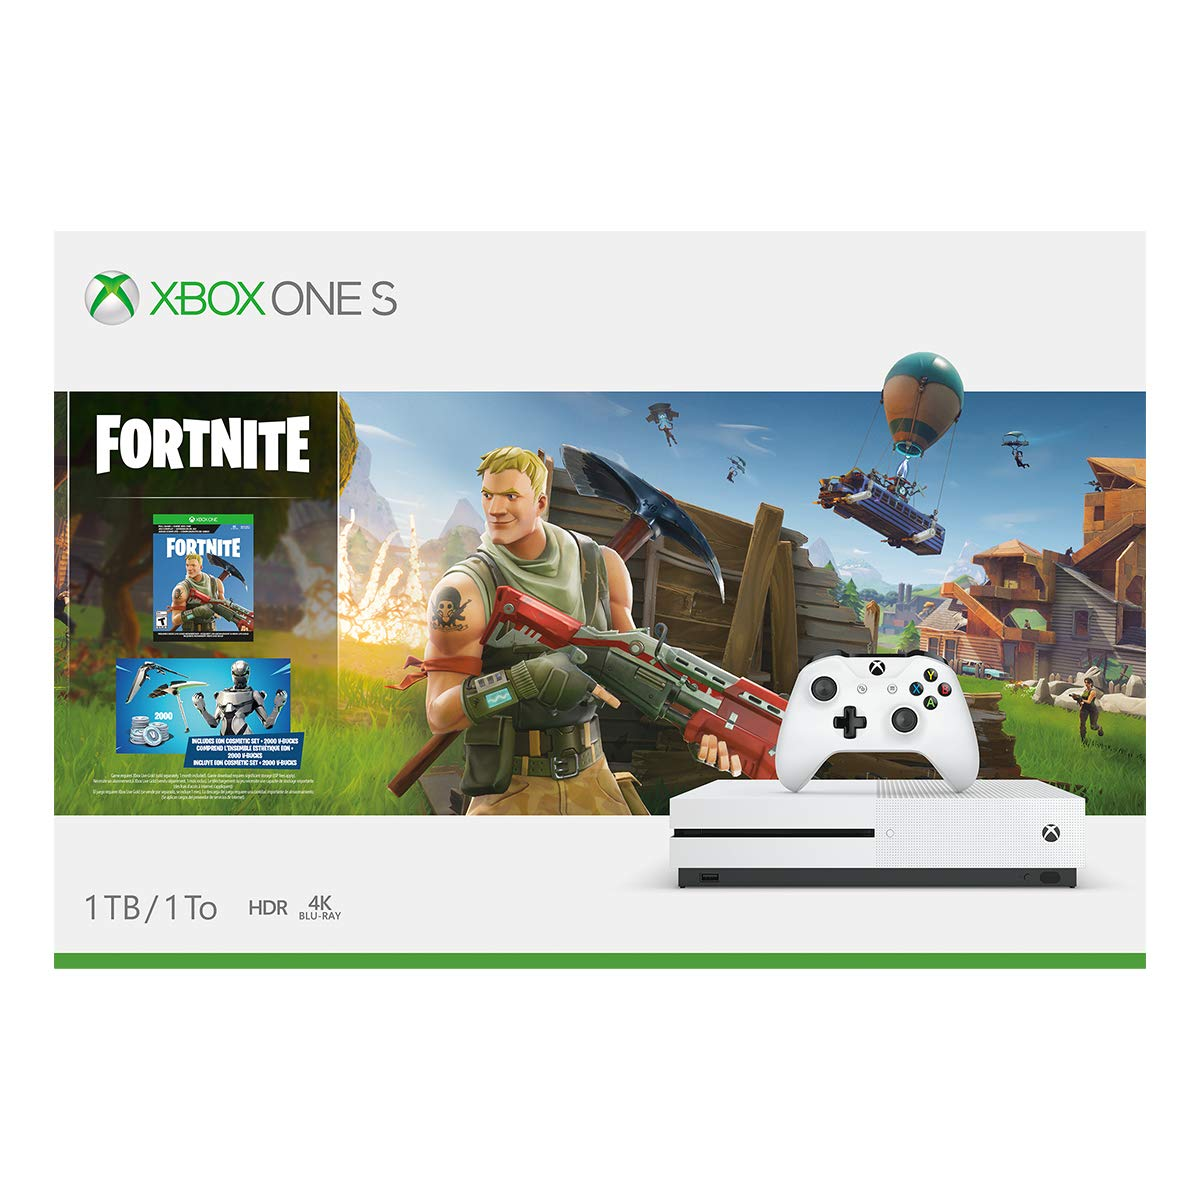 Xbox One S 1TB Console - Fortnite Bundle (Discontinued) by Microsoft (Image #9)